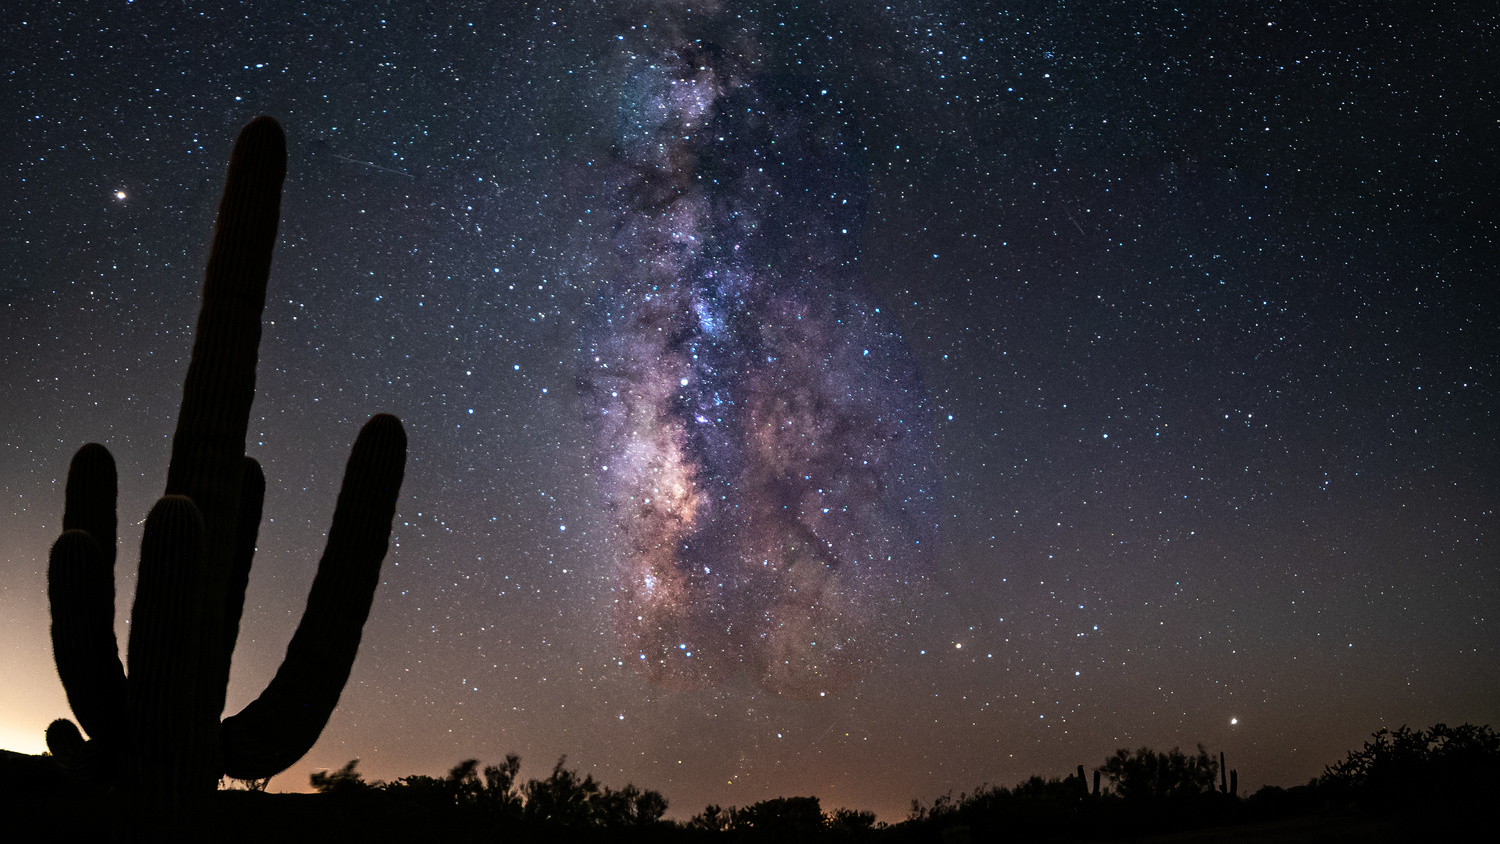 Getting Into Milky Way Astrophotography Without Spending a